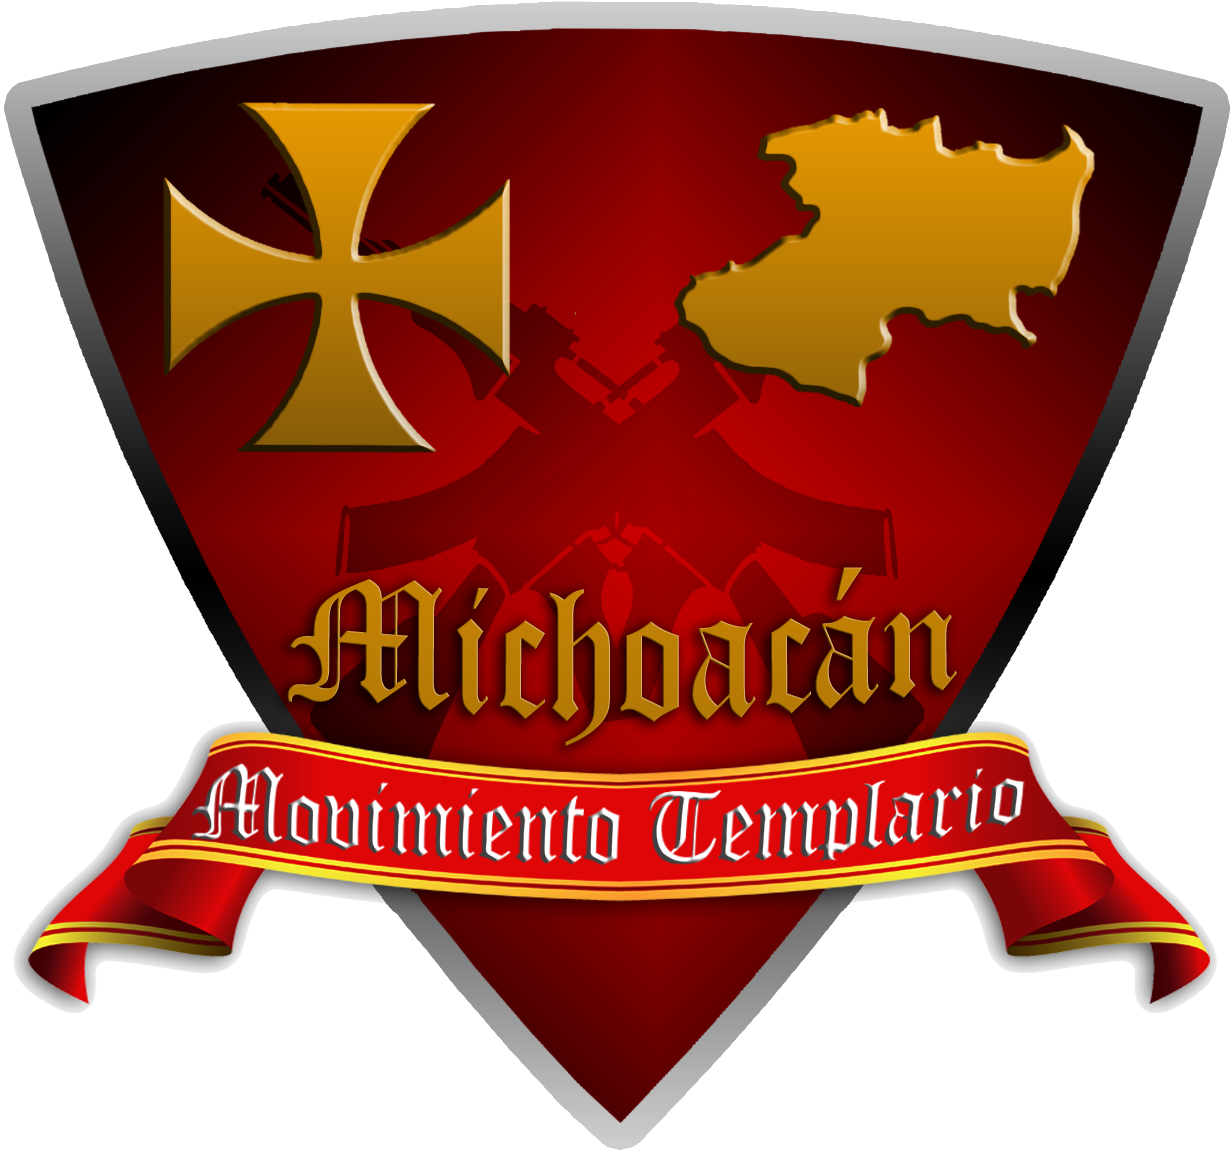 Spanish durg lord clipart image royalty free Knights Templar Cartel - Wikipedia image royalty free